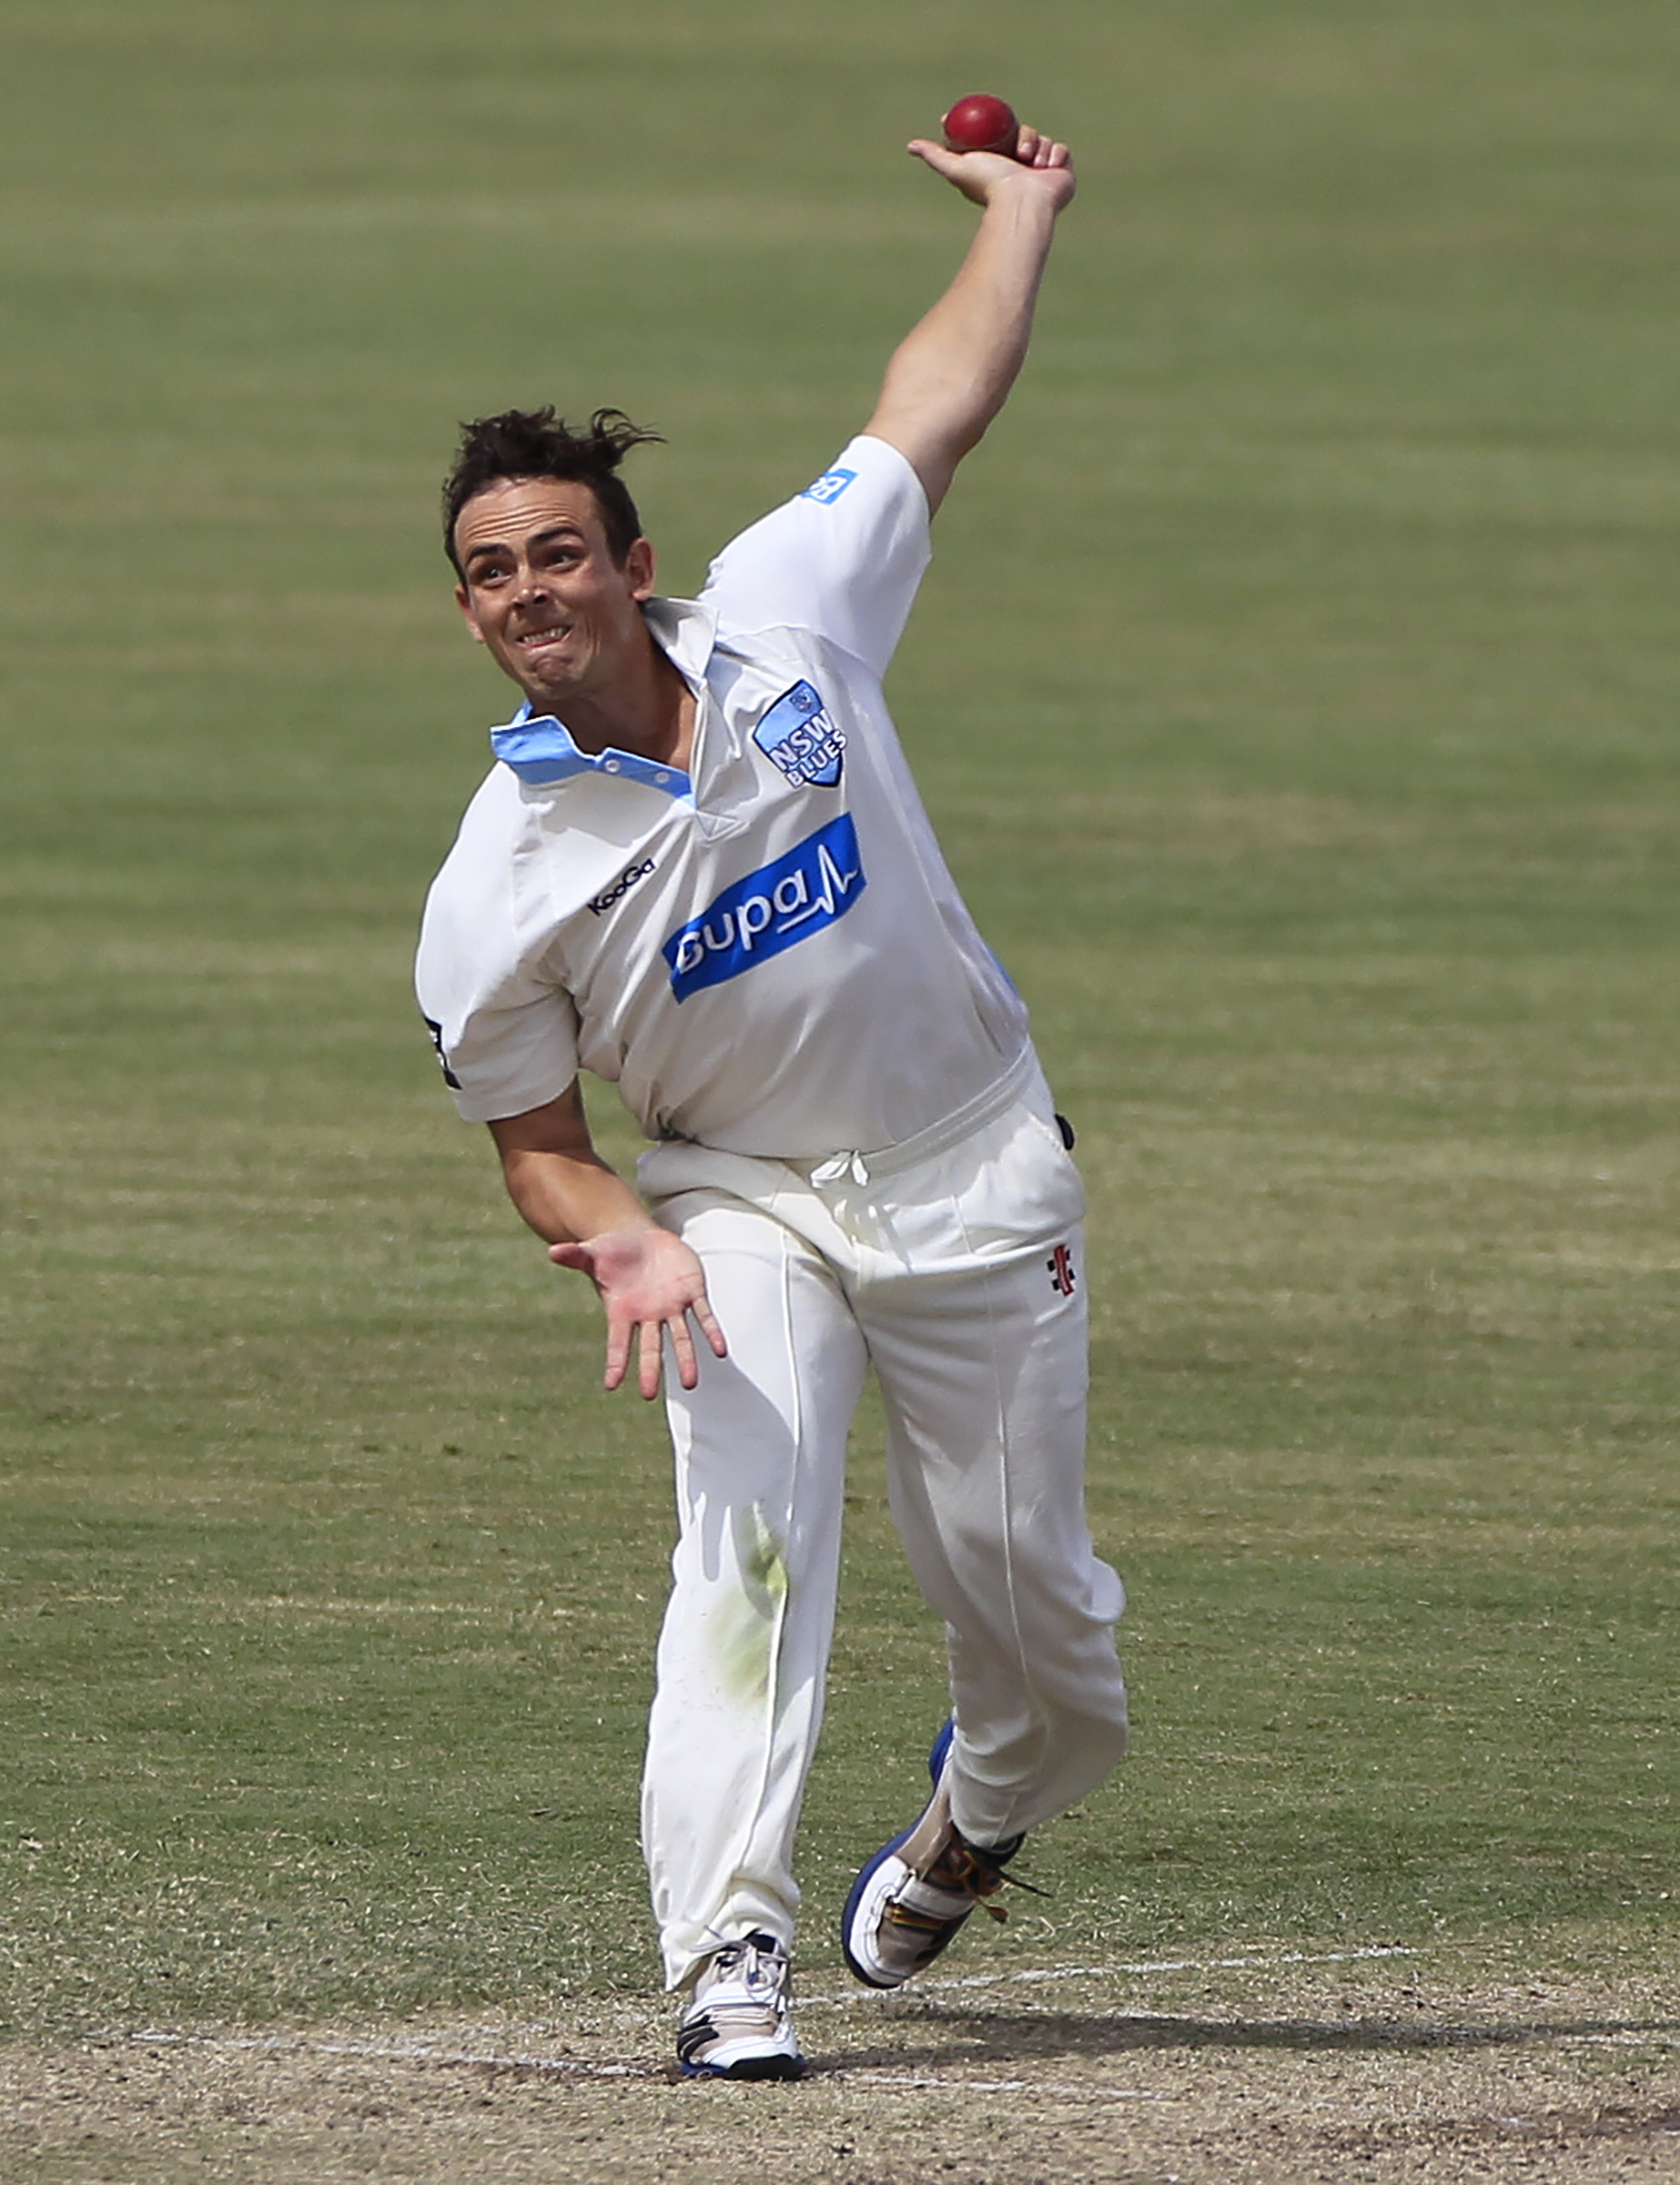 Steve O'Keefe bowling for NSW. AAP image